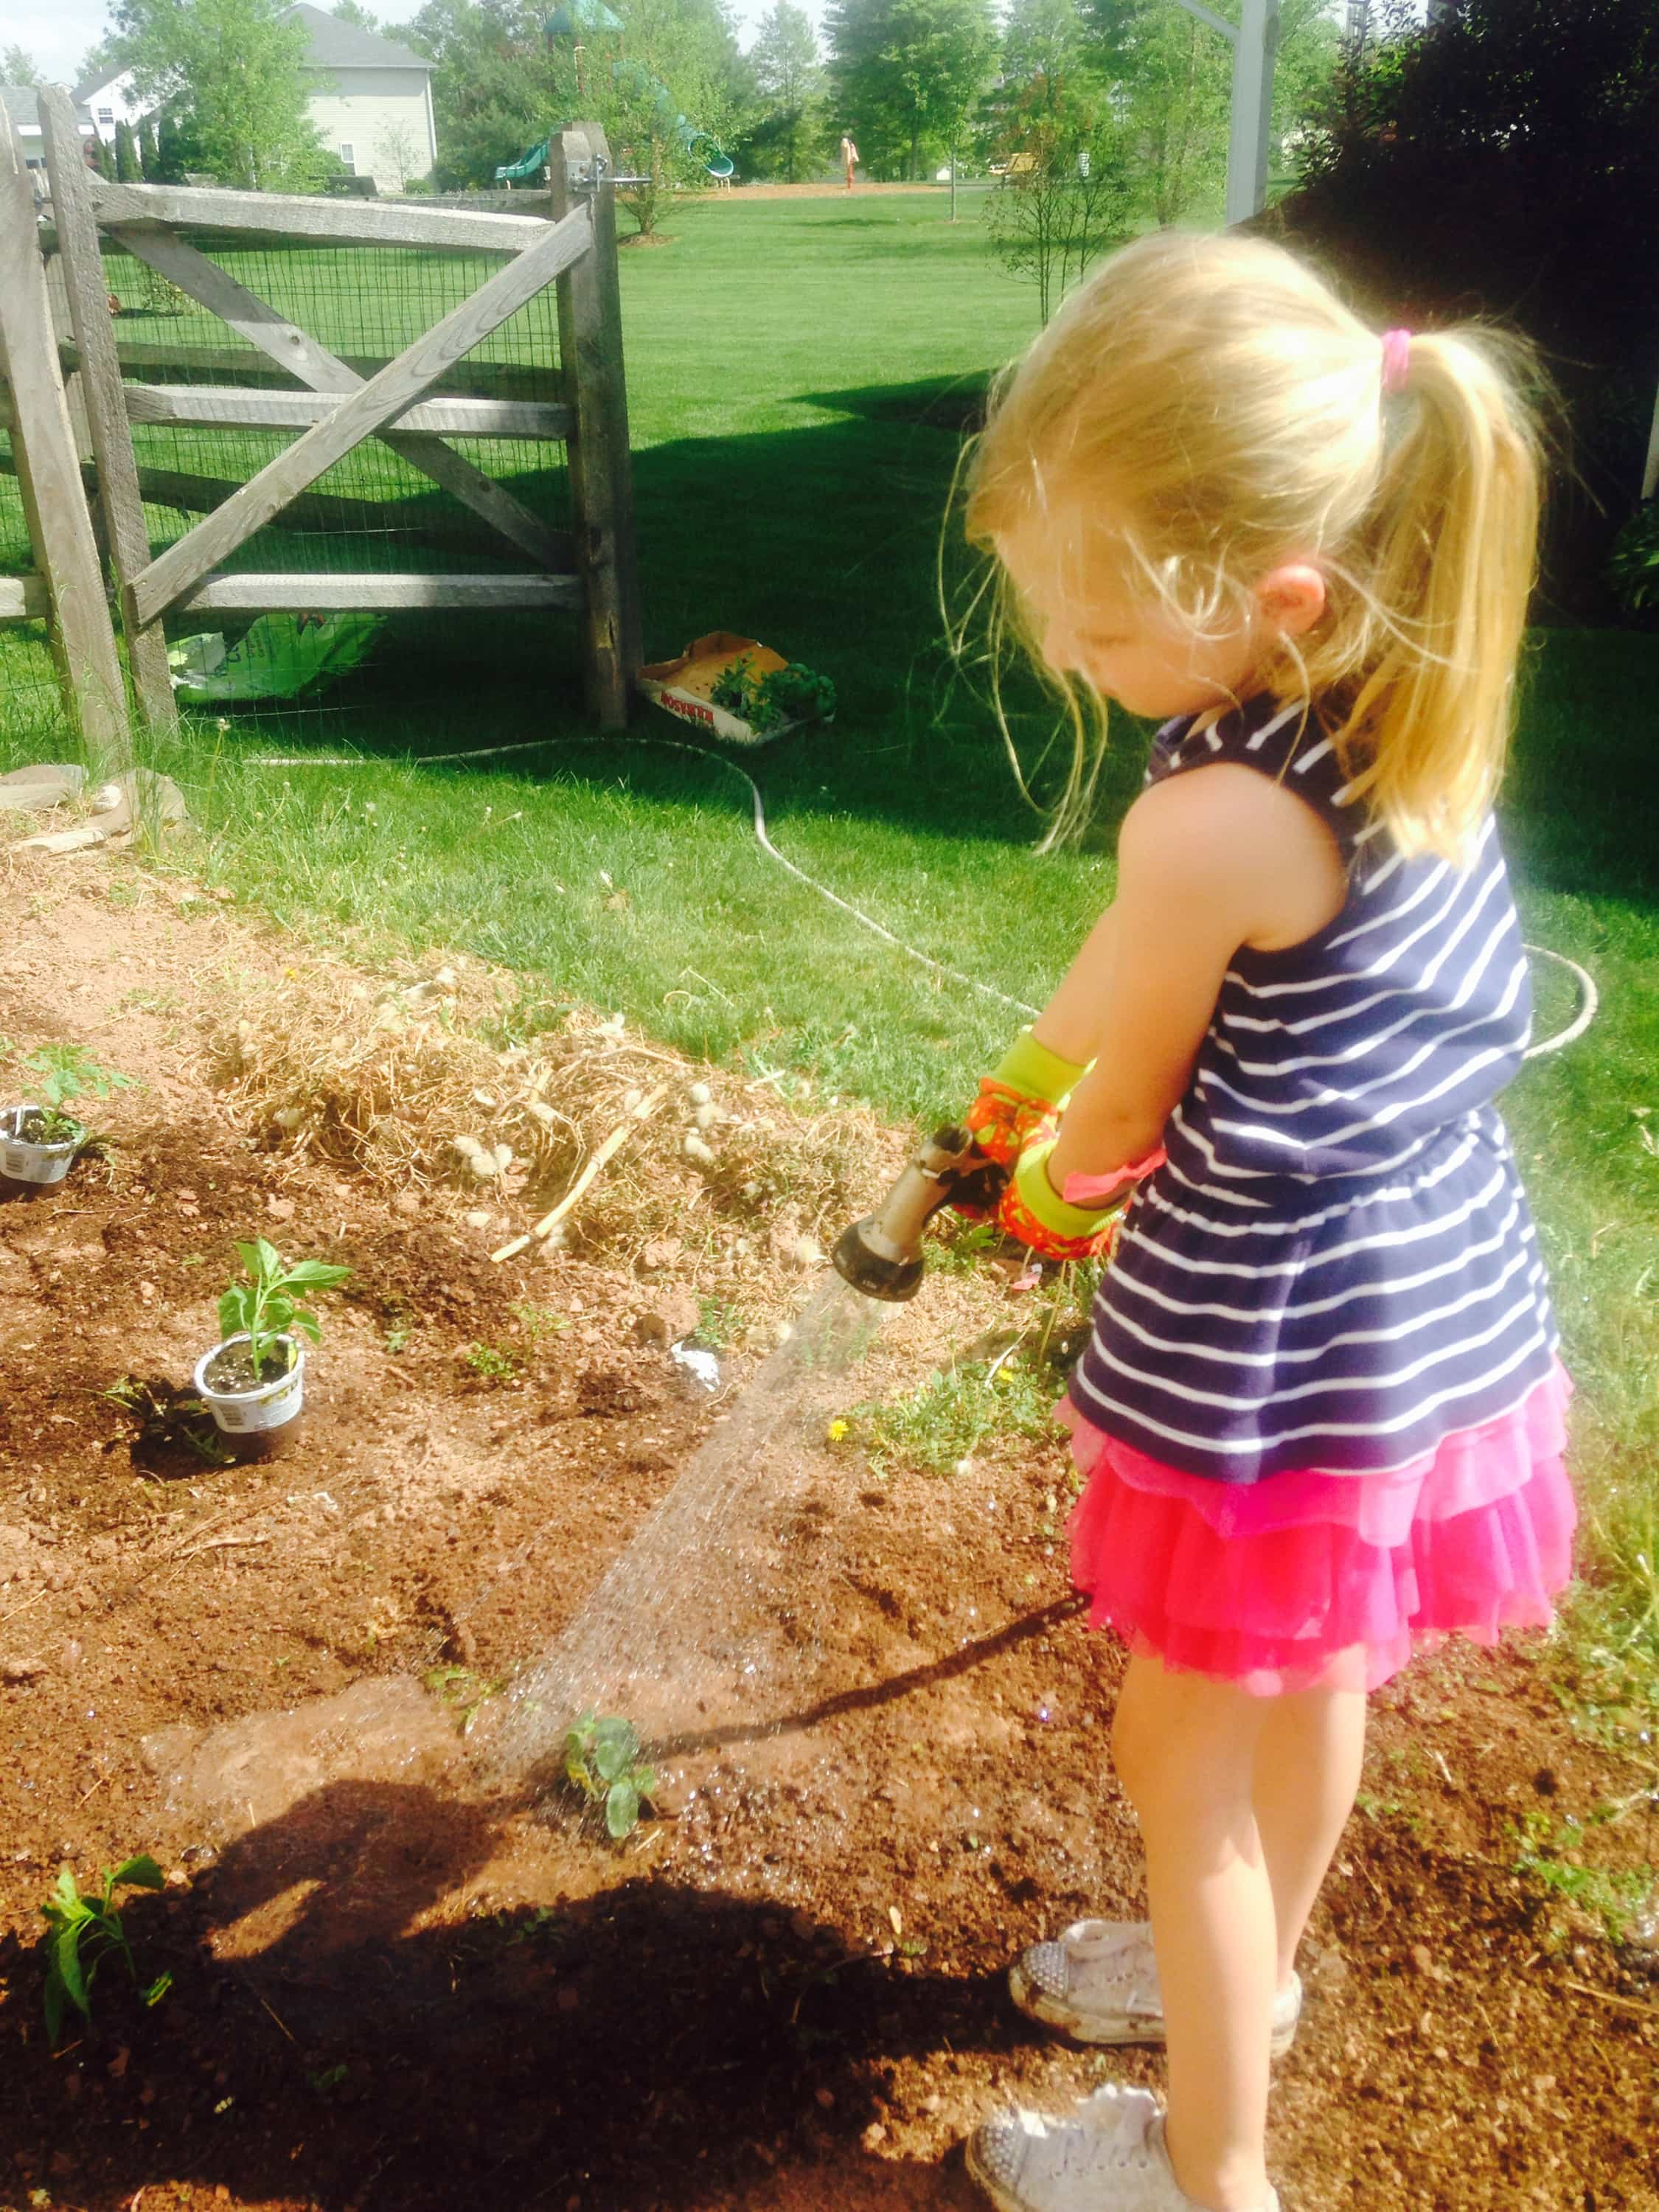 Little girl watering zucchini plants in the garden.